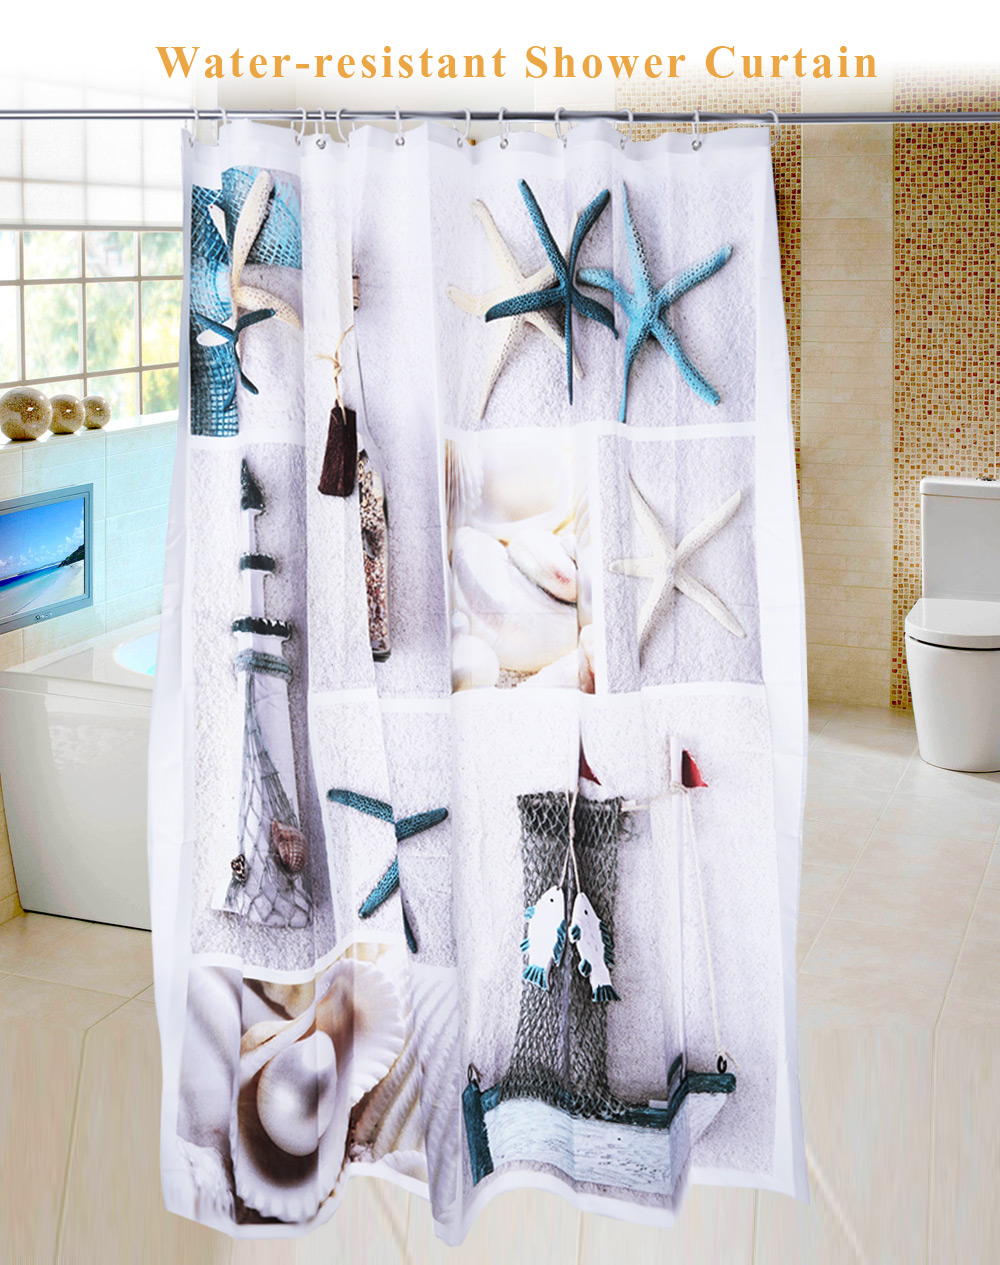 3D Blue Sea Life Seashell Pattern Water-resistant Bathing Shower Curtain Bathroom Decor